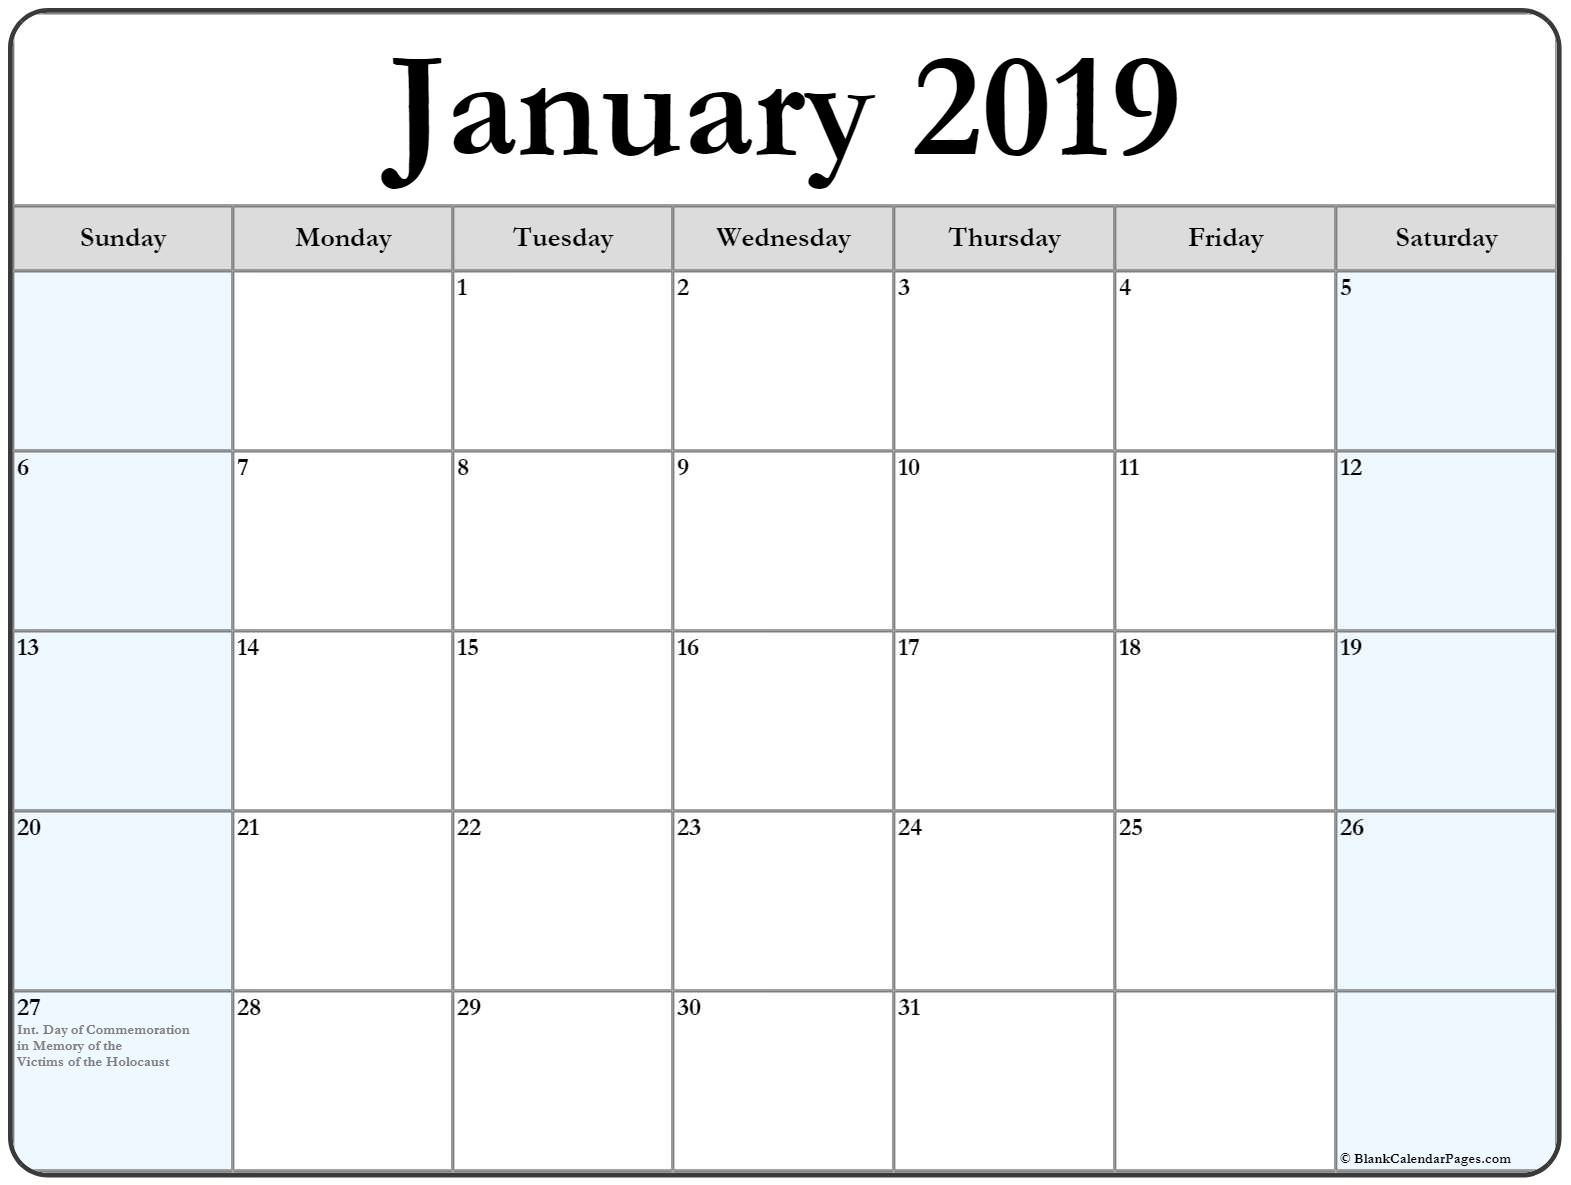 Collection Of January 2019 Calendars With Holidays